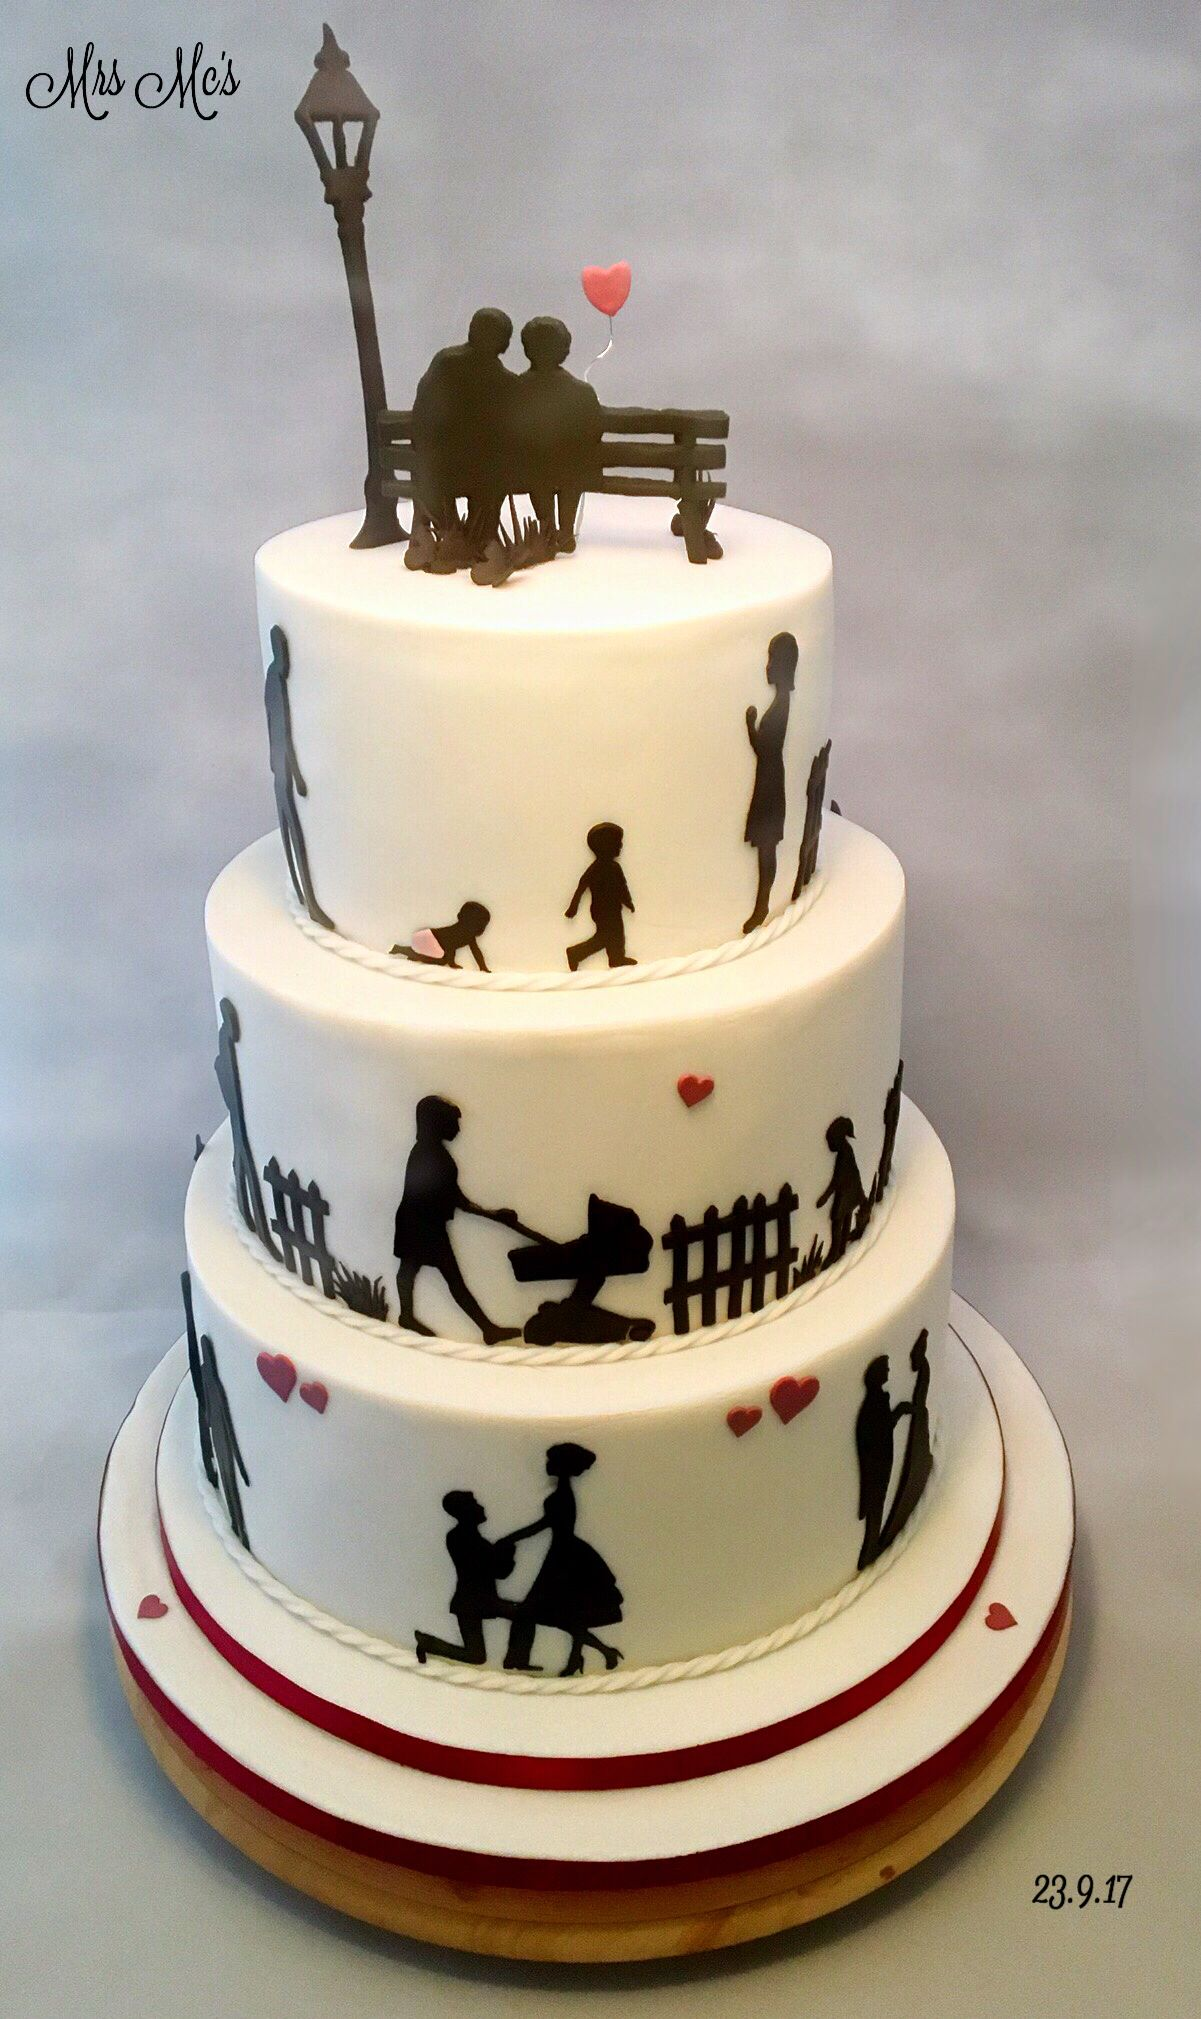 Life Story 3 Tier Silhouette Cake 60th Anniversary Cakes